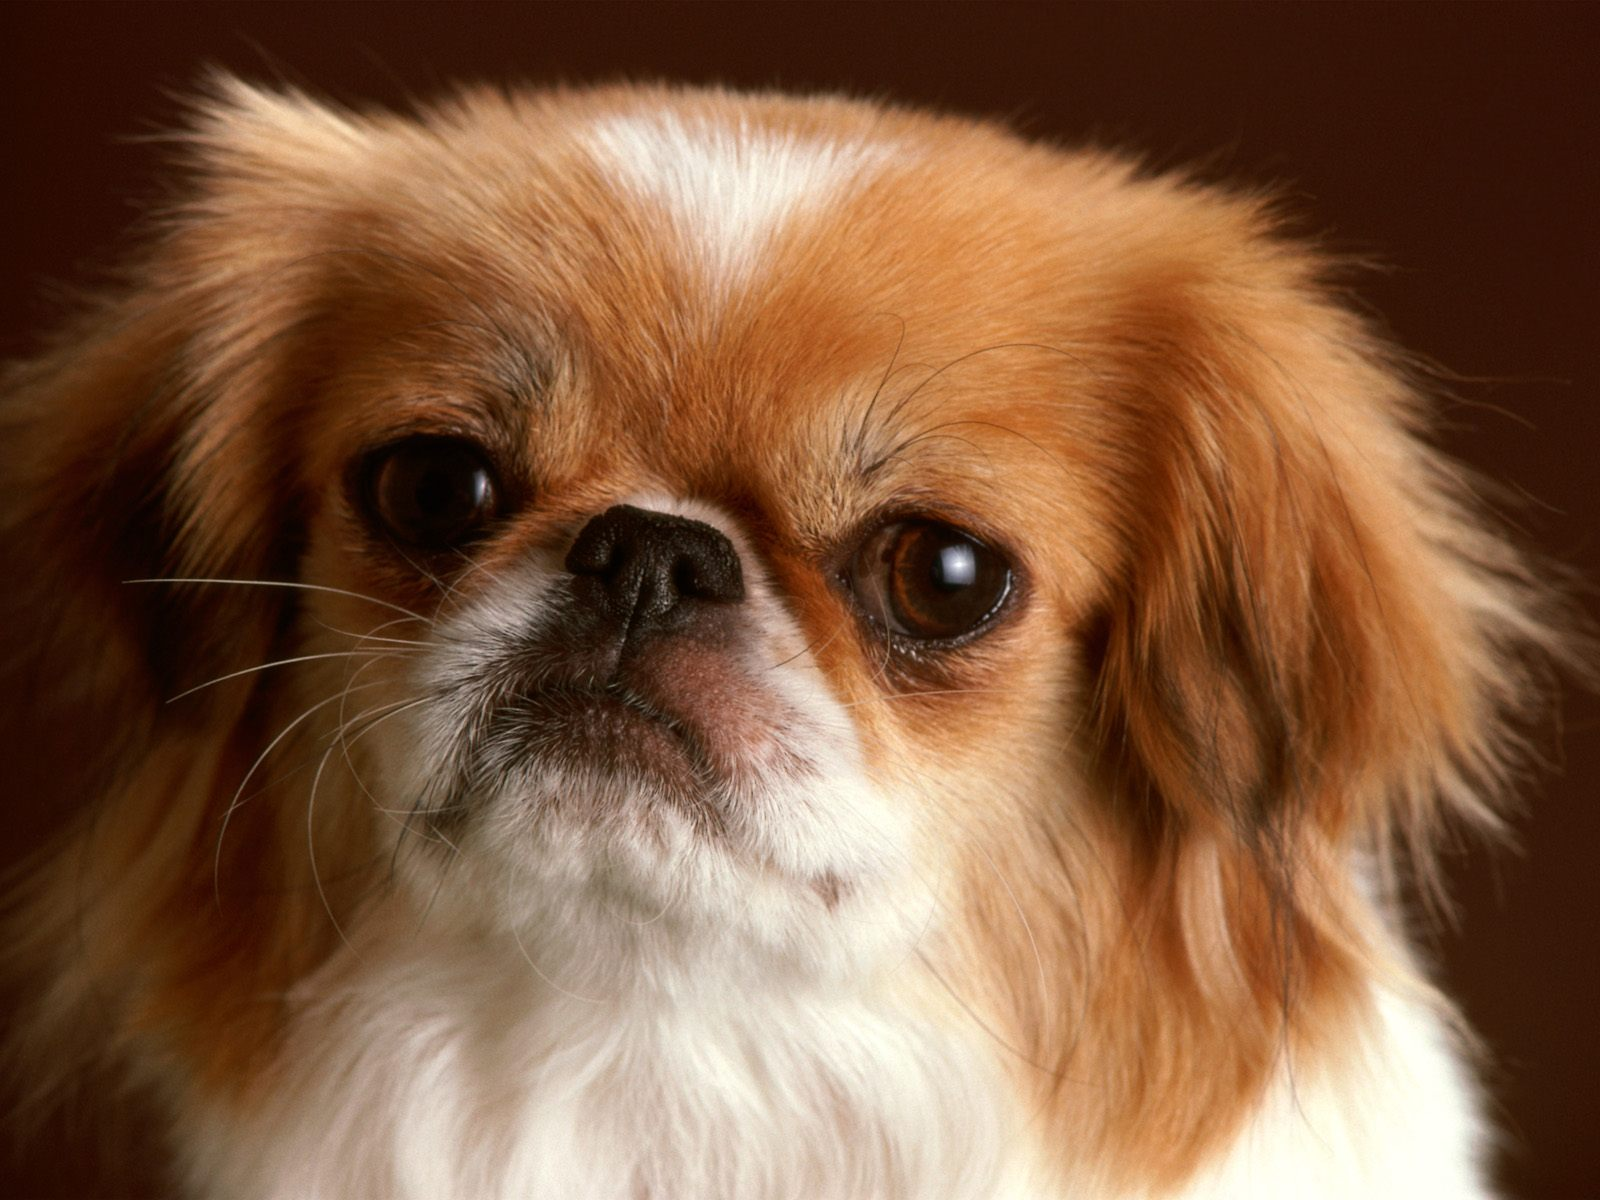 Beautiful Dogs Wallpapers TipTop 3D HD Wallpapers Collection 1600x1200